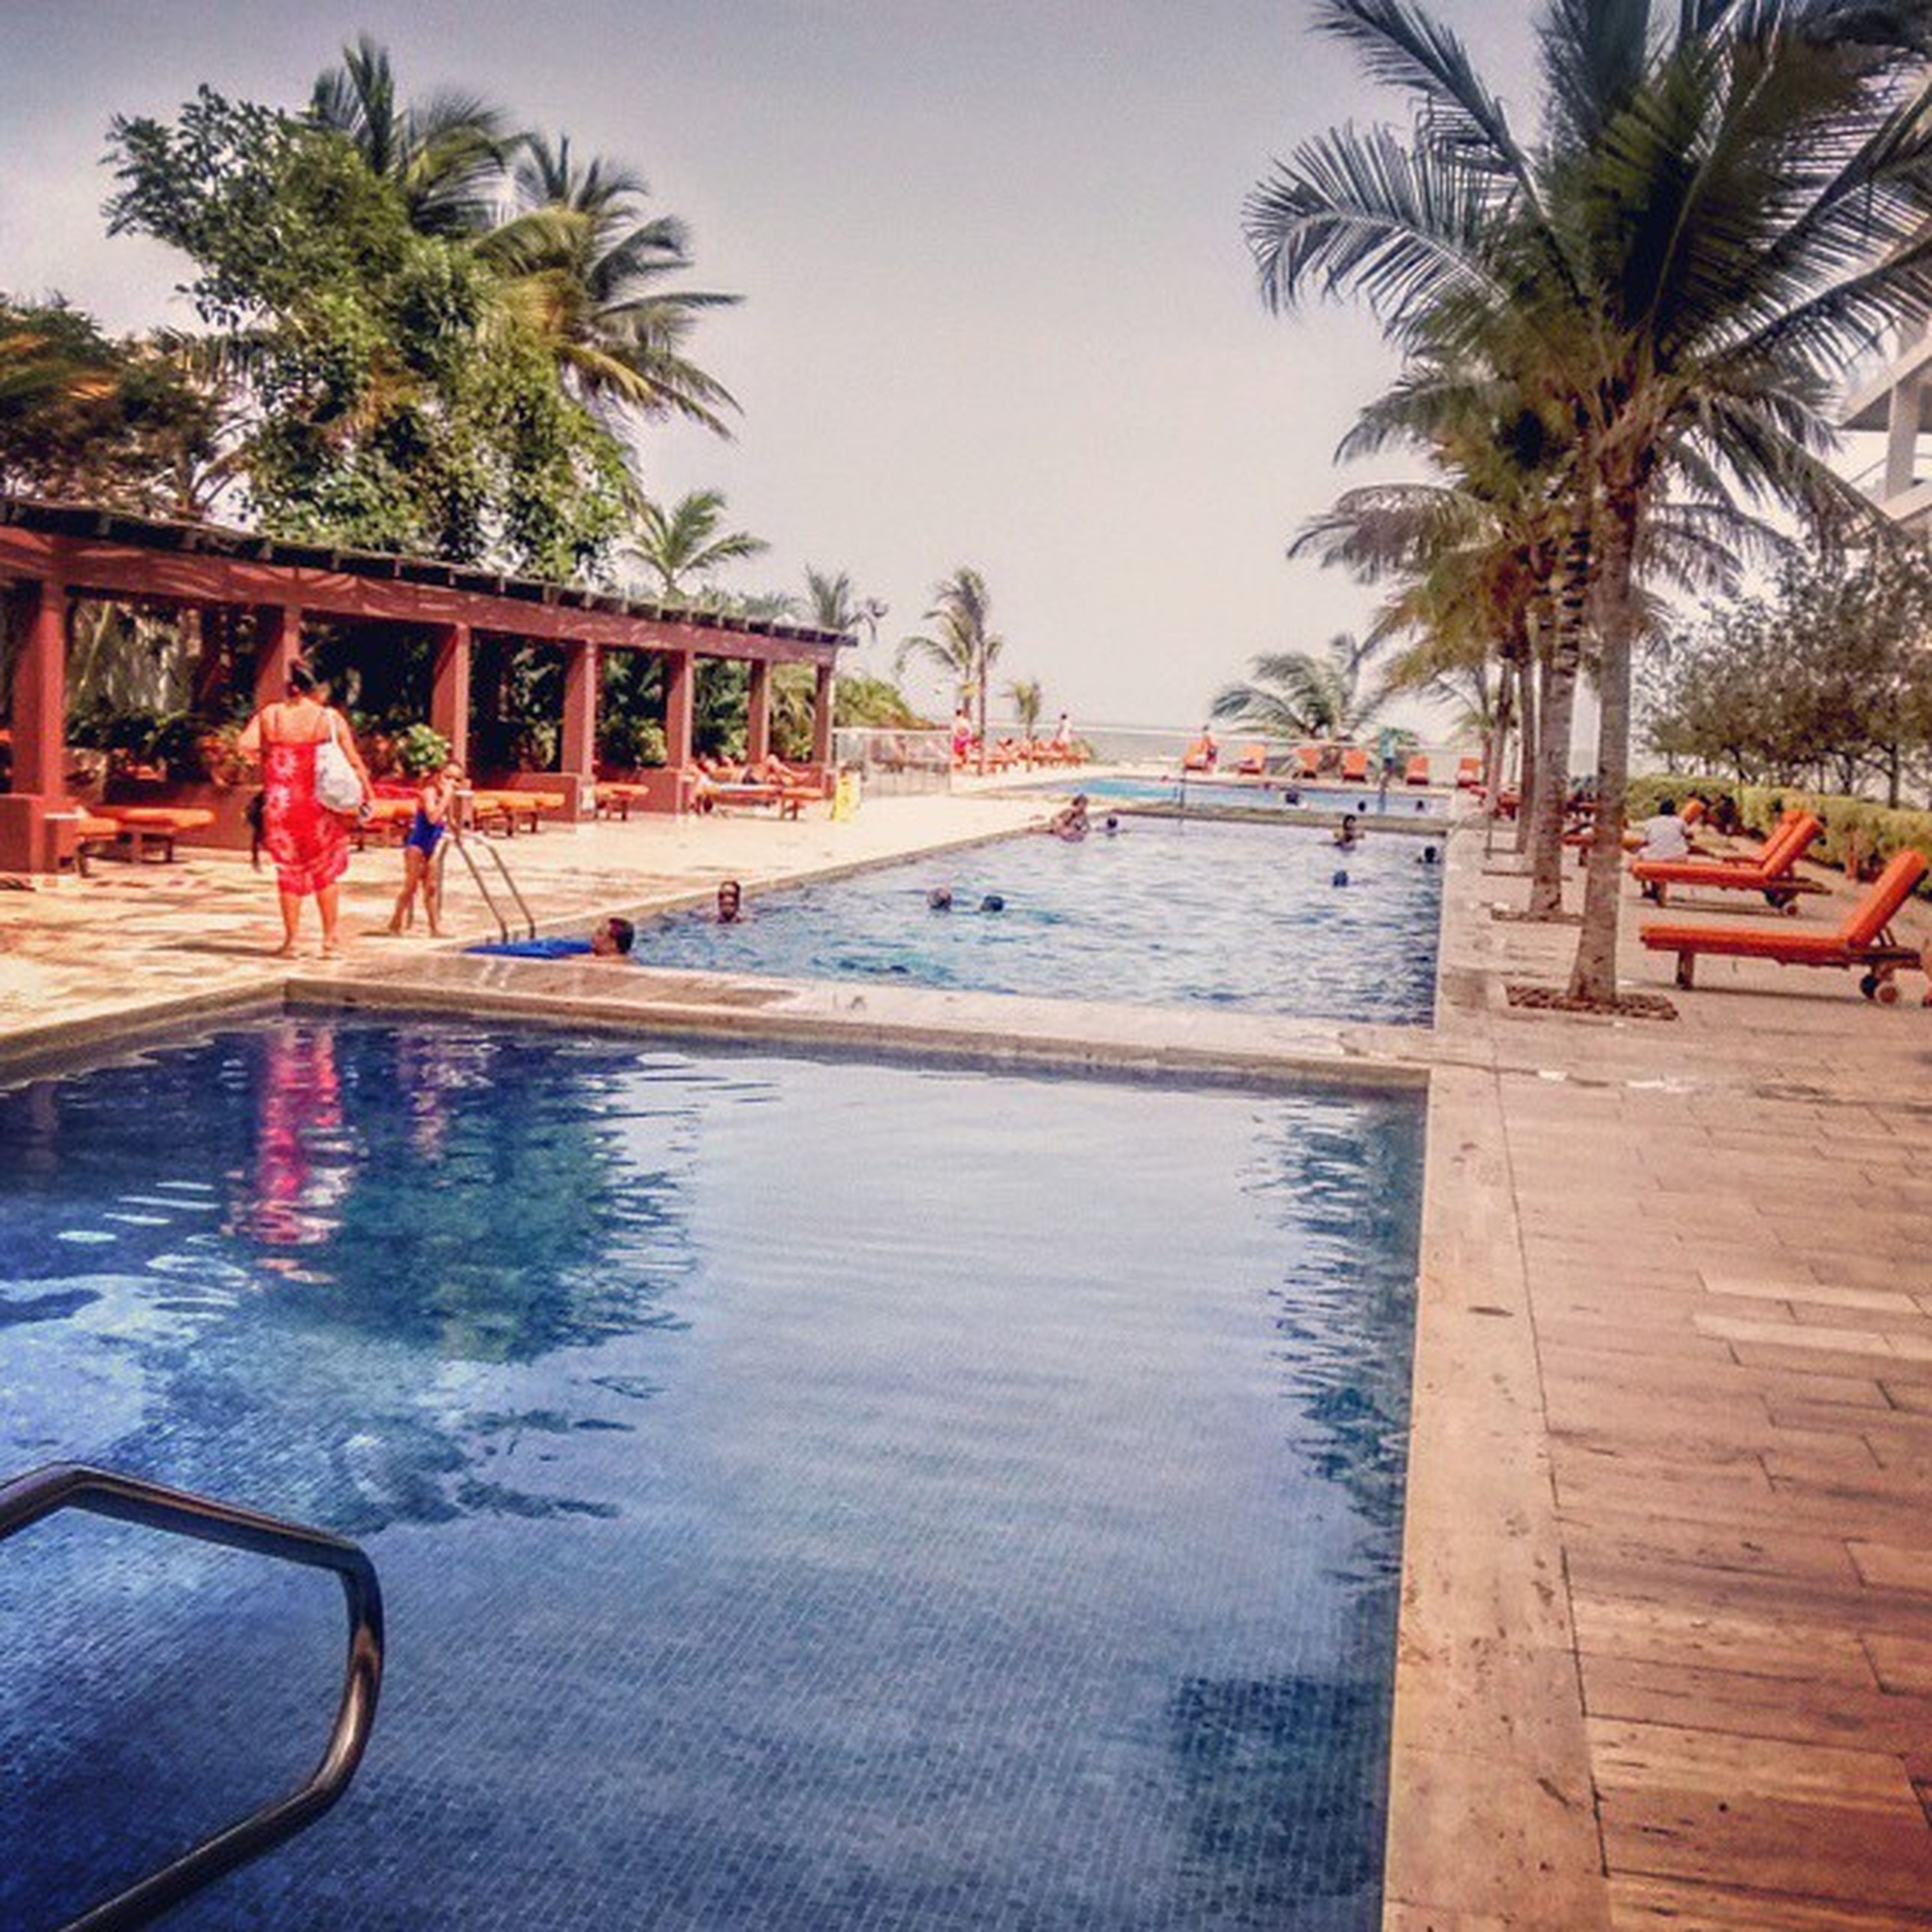 water, lifestyles, leisure activity, palm tree, tree, swimming pool, beach, sea, clear sky, people, built structure, enjoyment, vacations, architecture, railing, tourist, full length